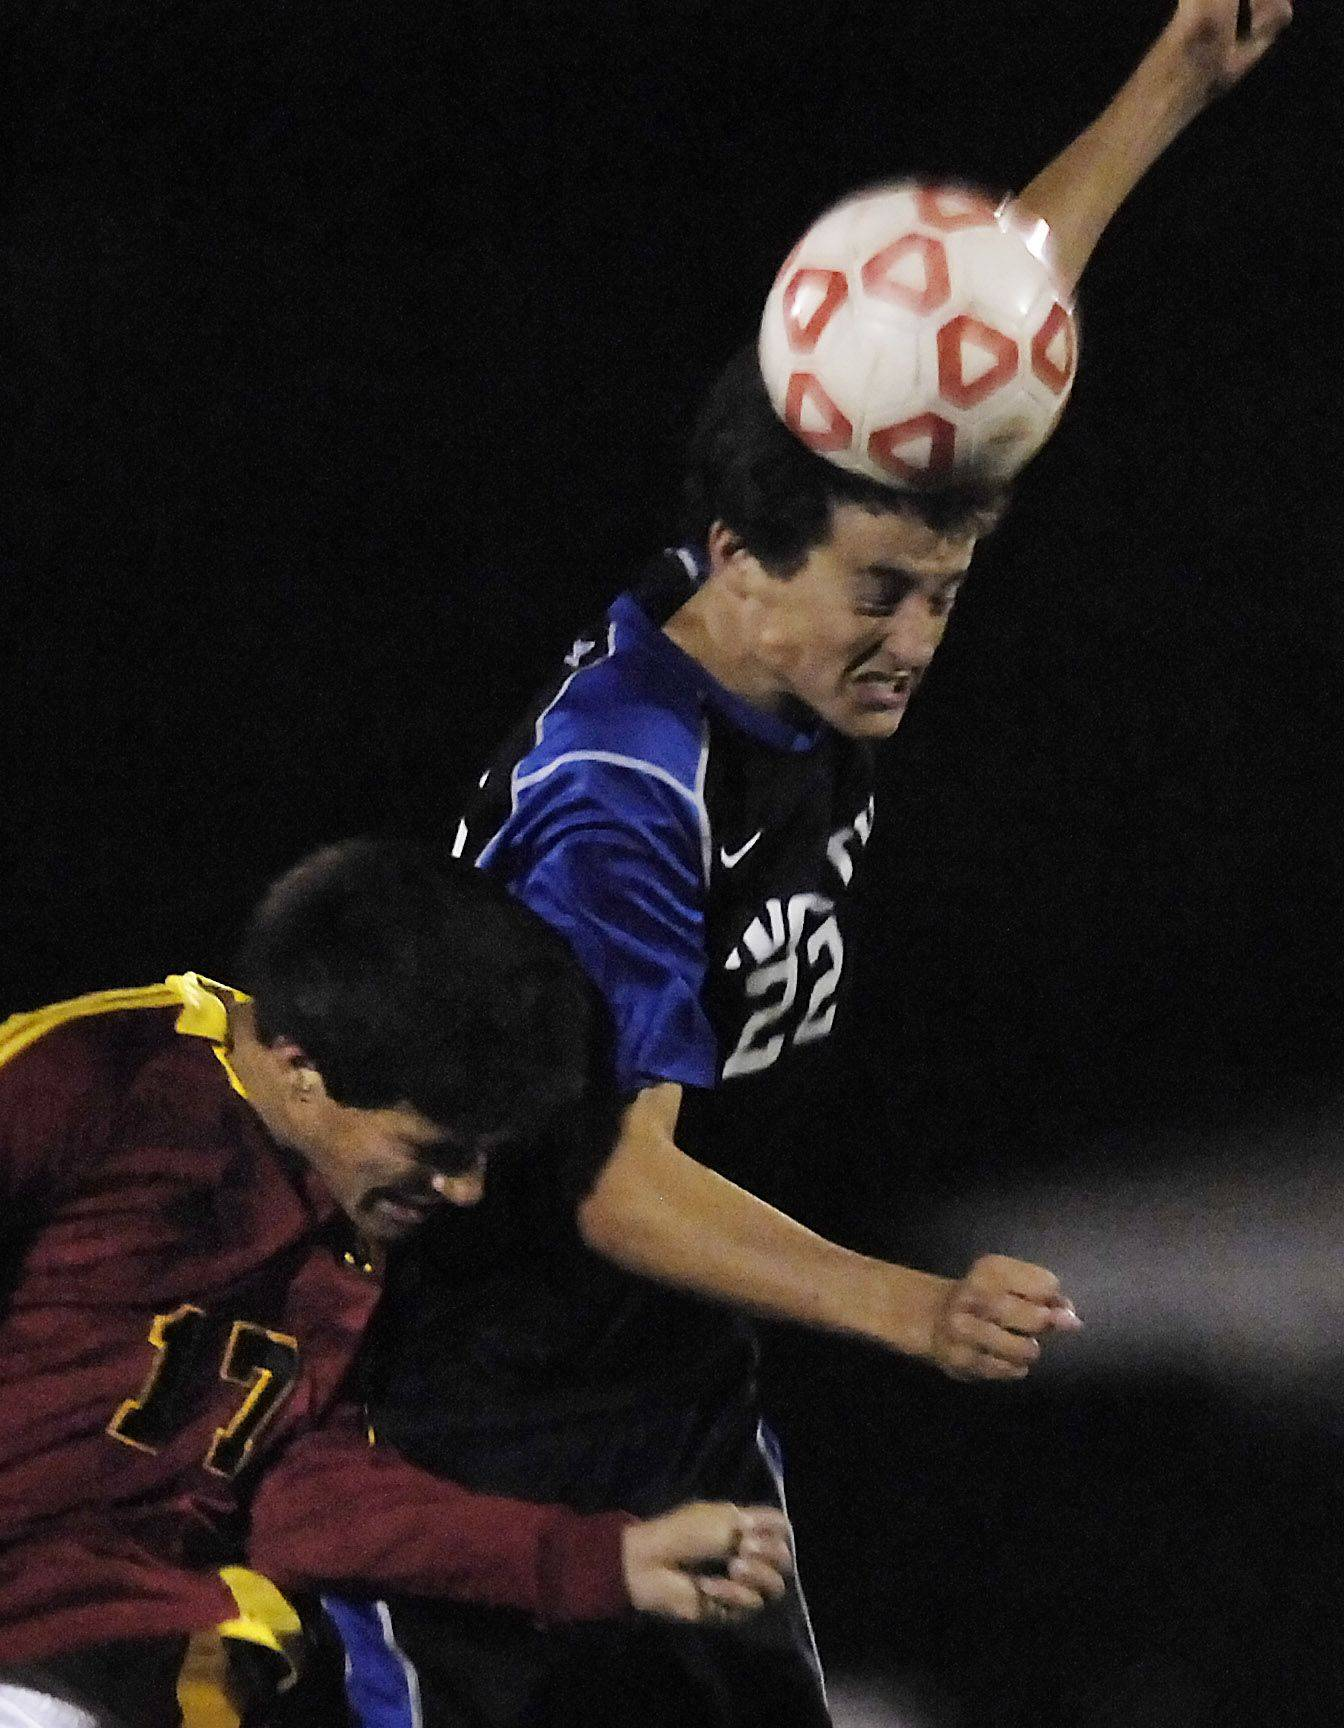 St. Charles North's Jared Casey heads the ball against Batavia's Nick Barstatis Wednesday.